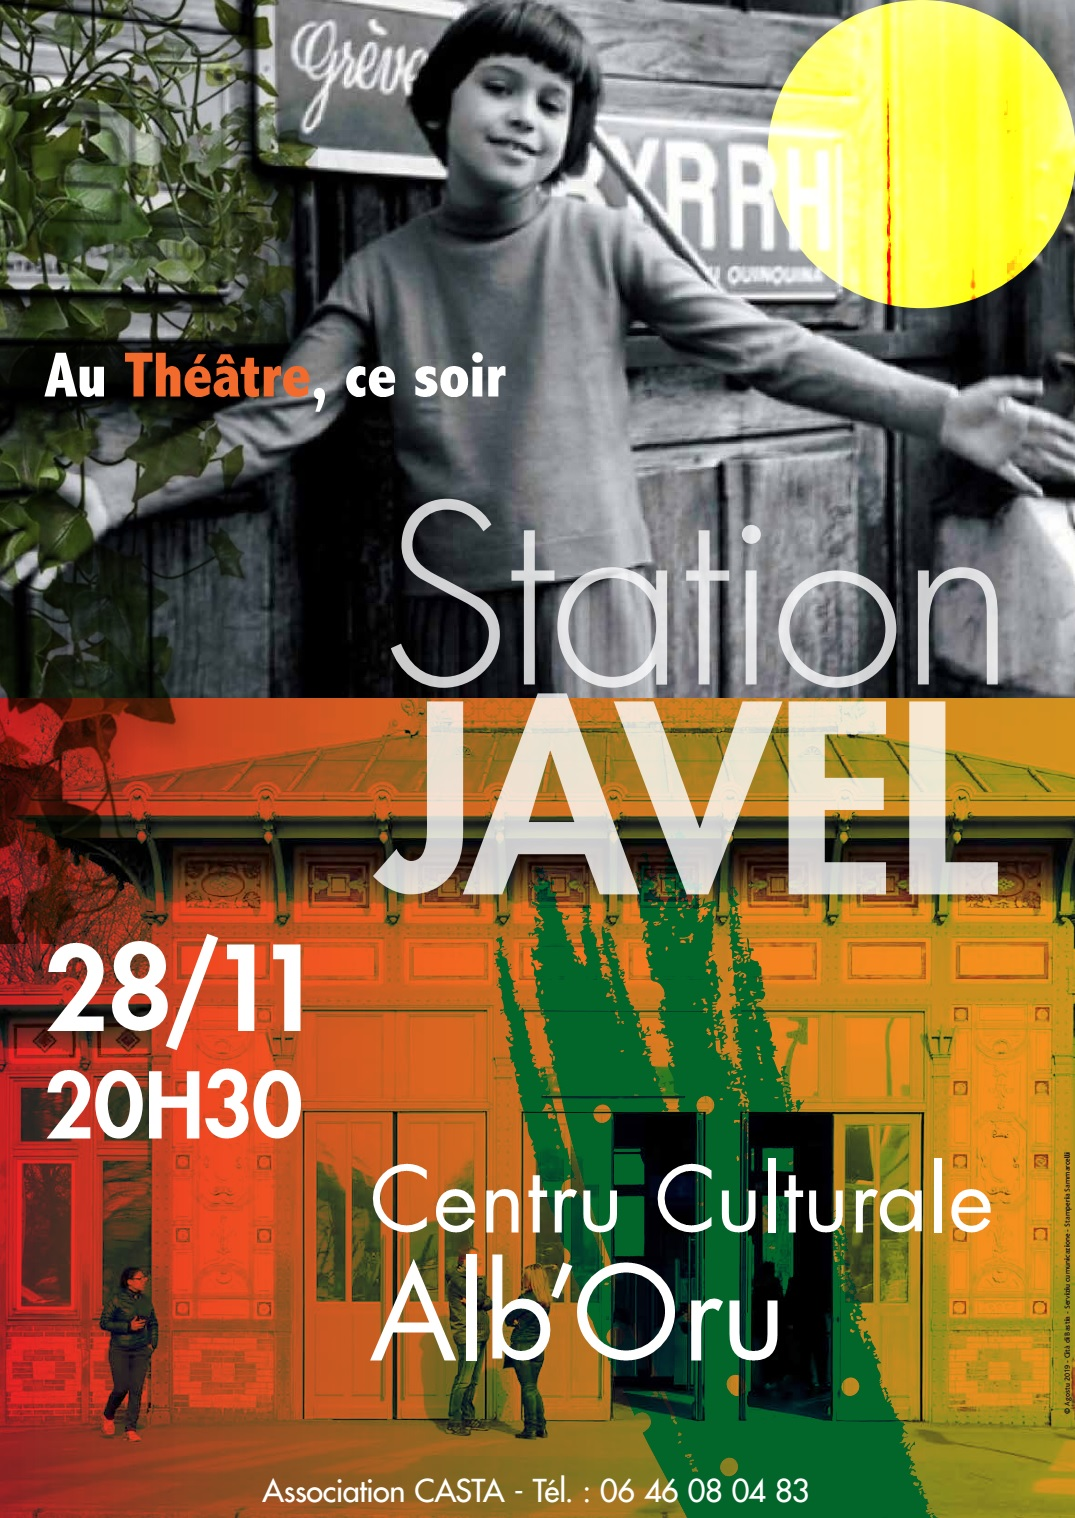 Bastia : « Station Javel », un beau spectacle musical à l'Alb'Oru